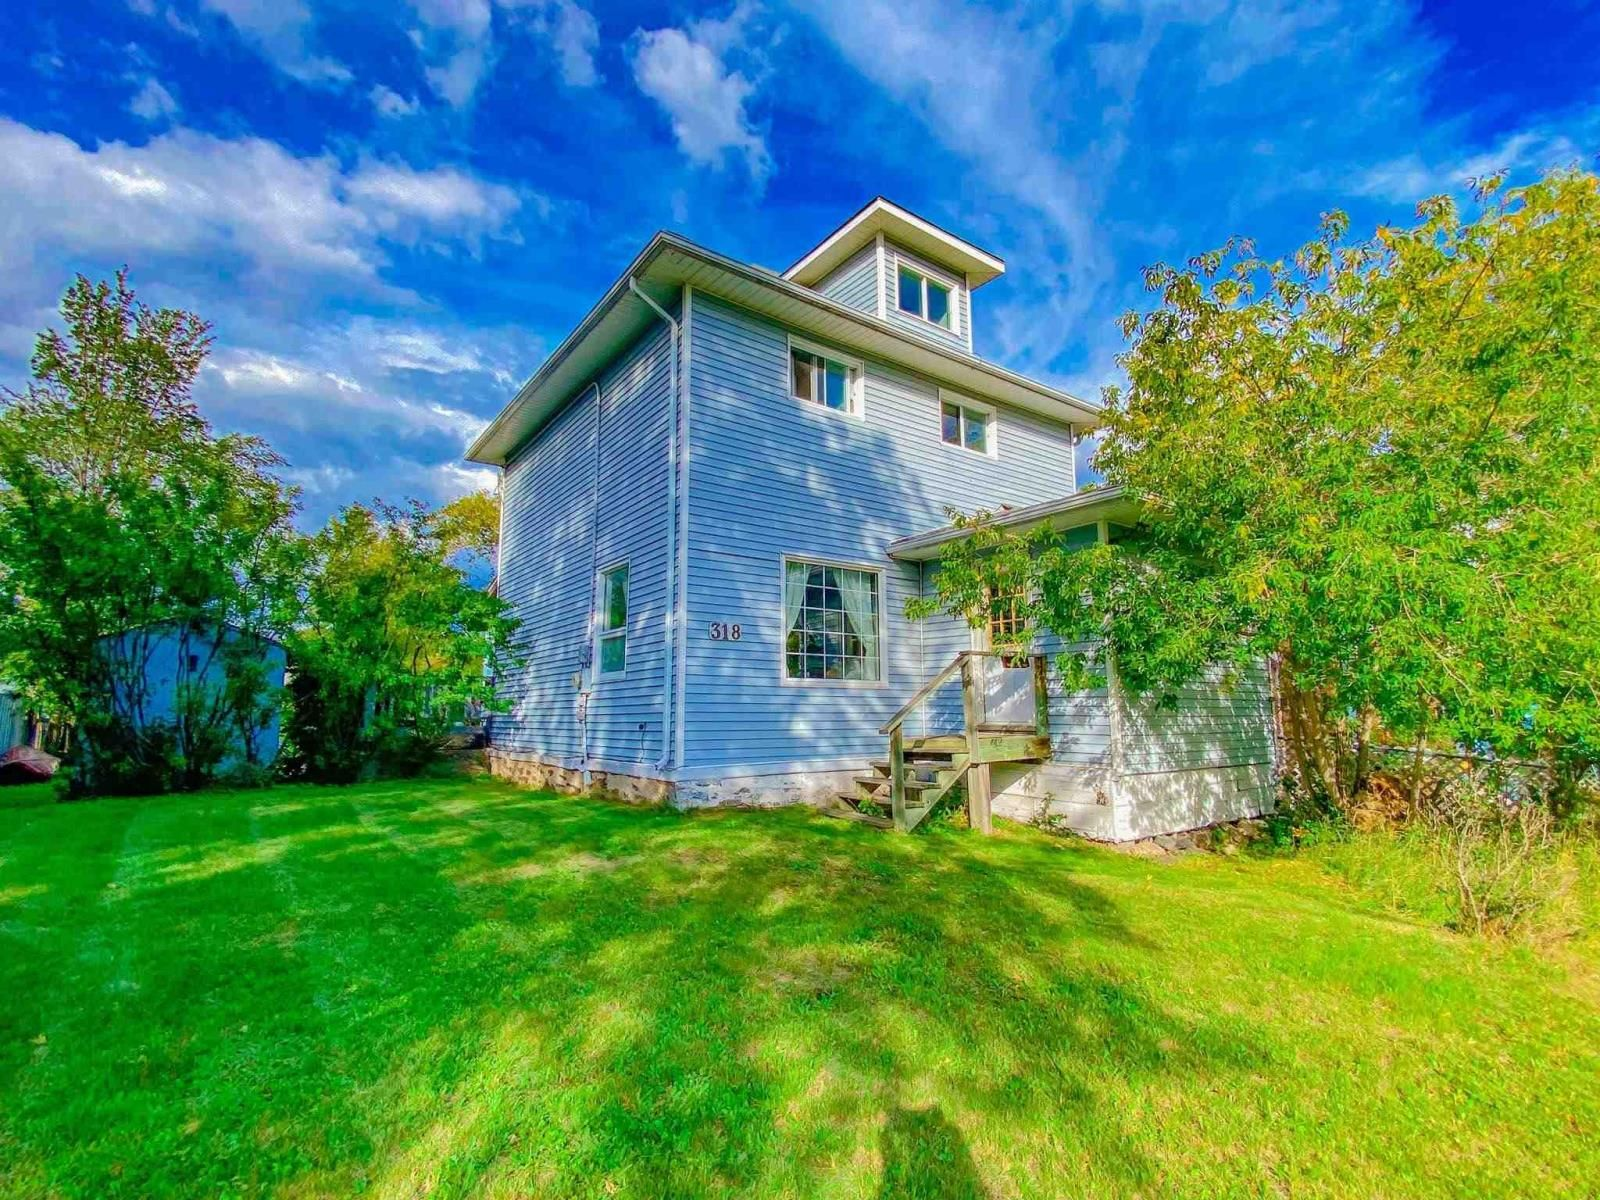 Main Photo: 318 Second ST N in KENORA: House for sale : MLS®# TB212675